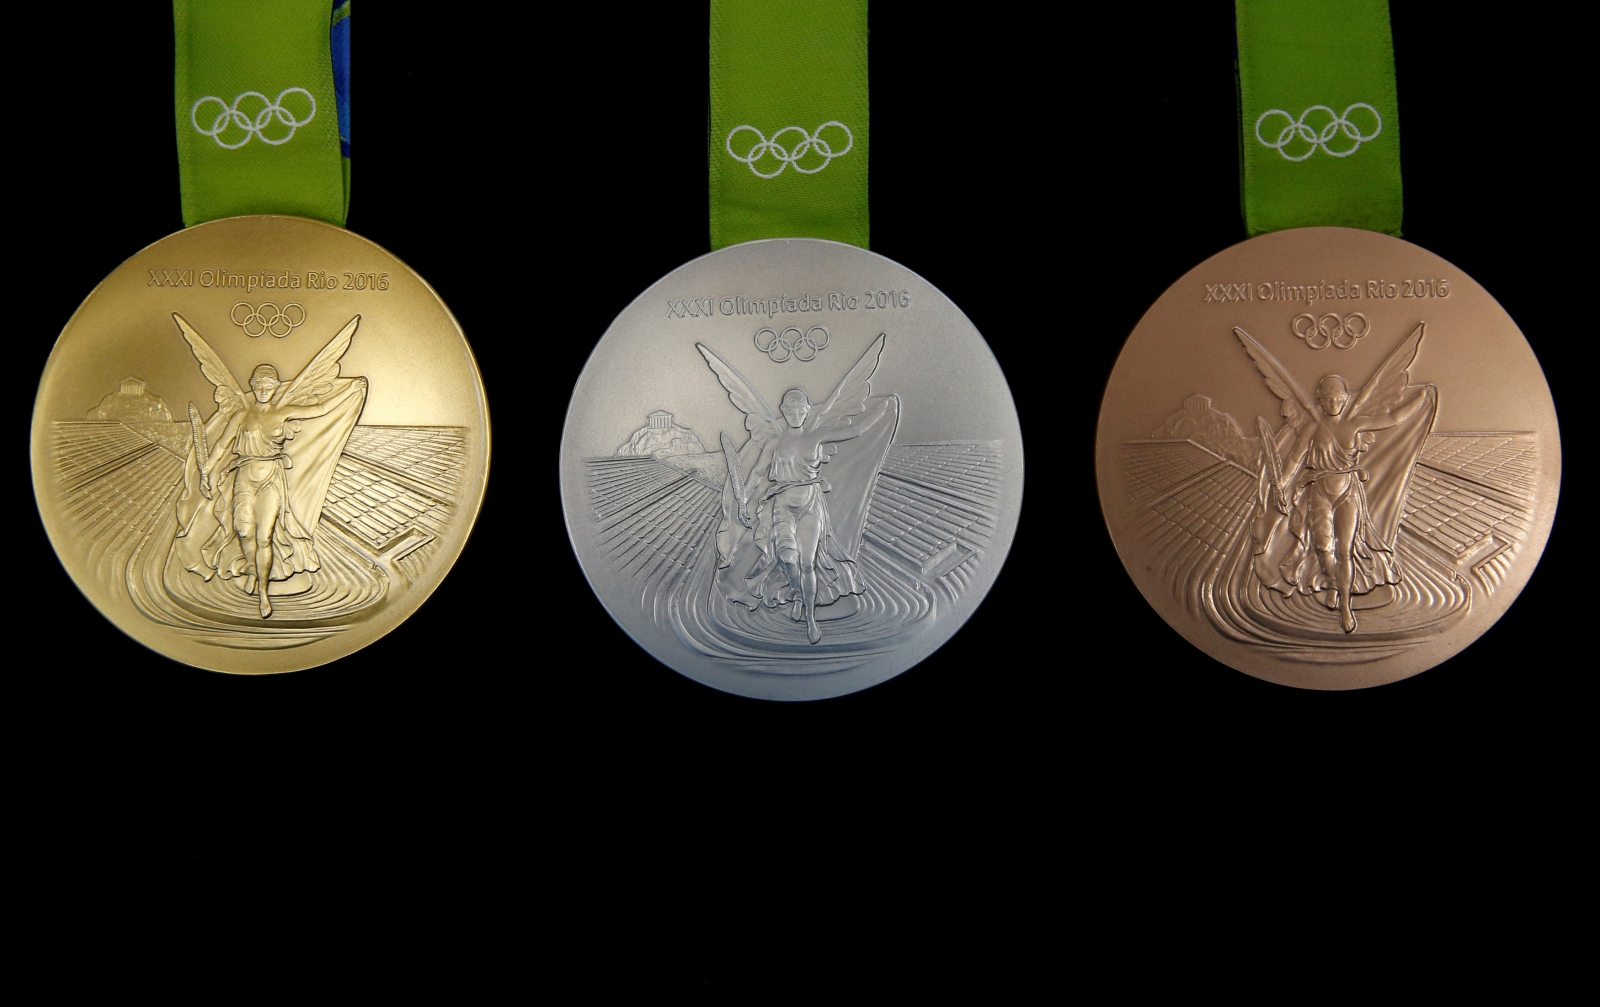 New Rio 2016 medals reviled